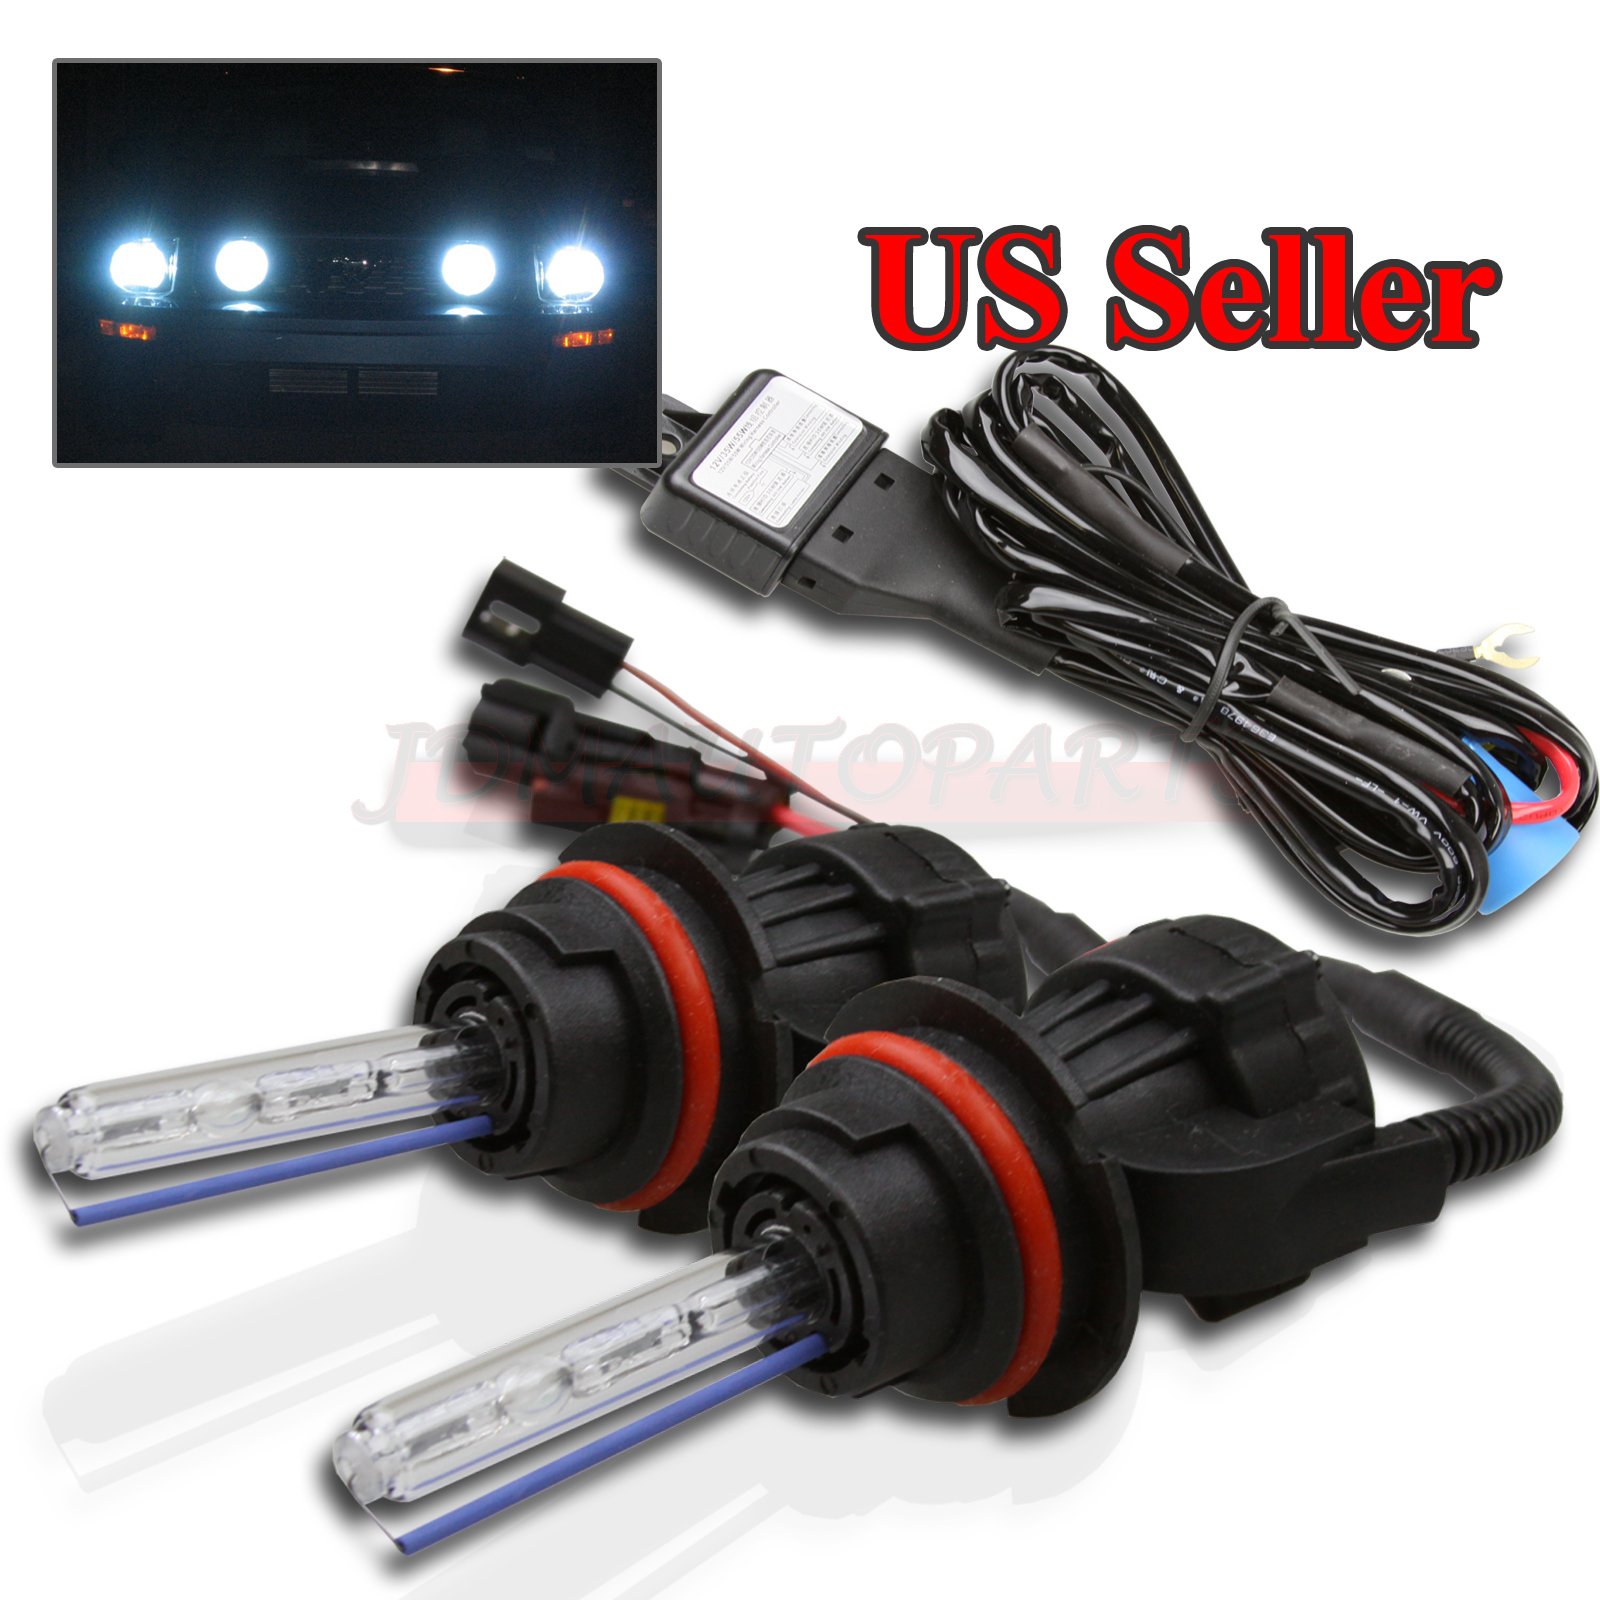 Details About 2 X 9007 Headlight 8000k Ice Blue Dual Beam 55w Hid Bi Xenon Bulbs Relay Harness Conversion Wiring Diagram Categories